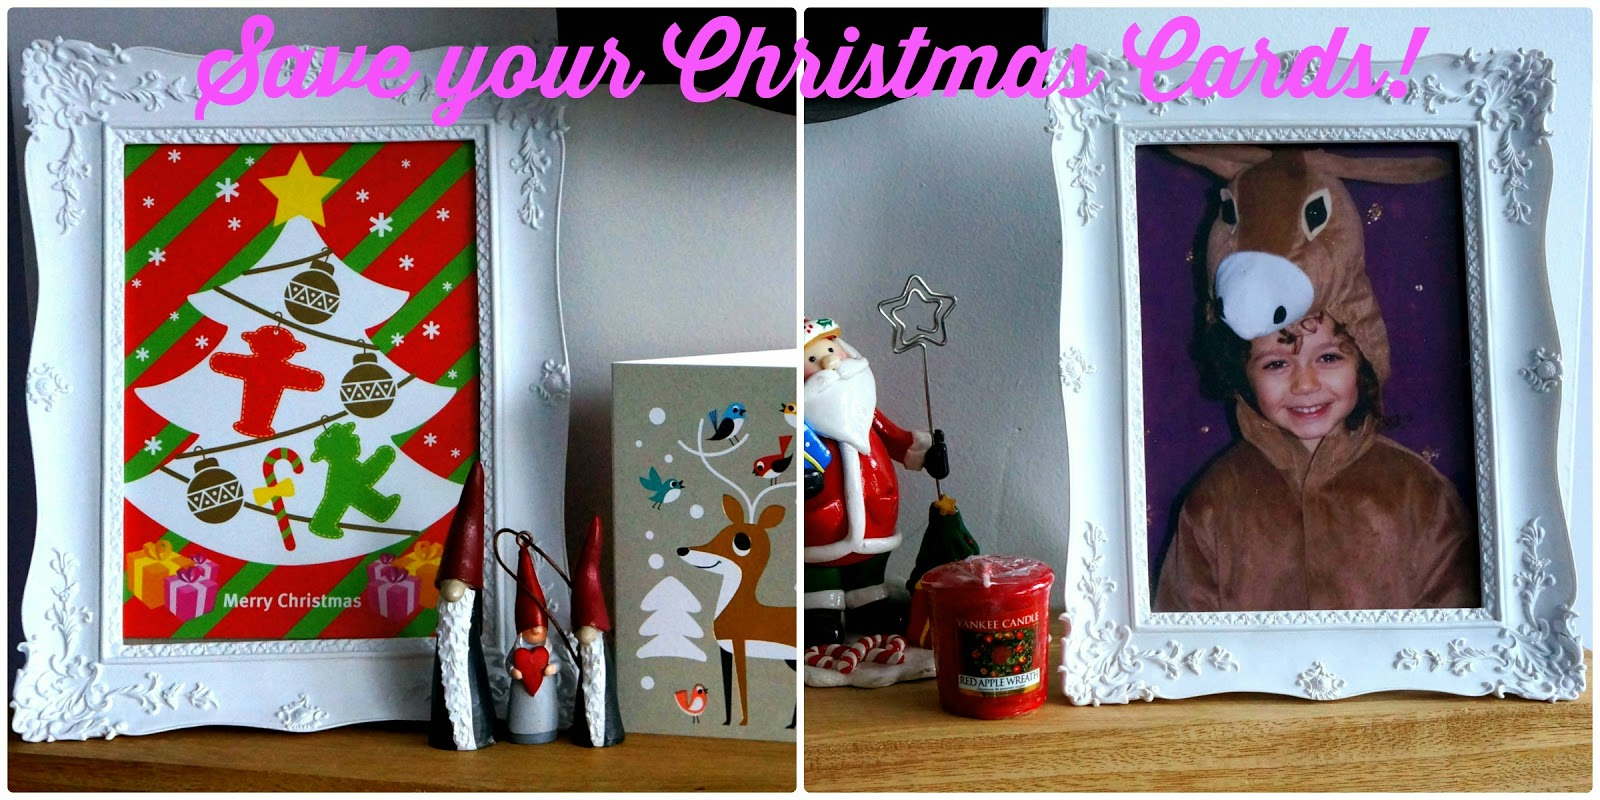 SAVE YOUR SCISSORS :: REUSE YOUR CHRISTMAS CARDS